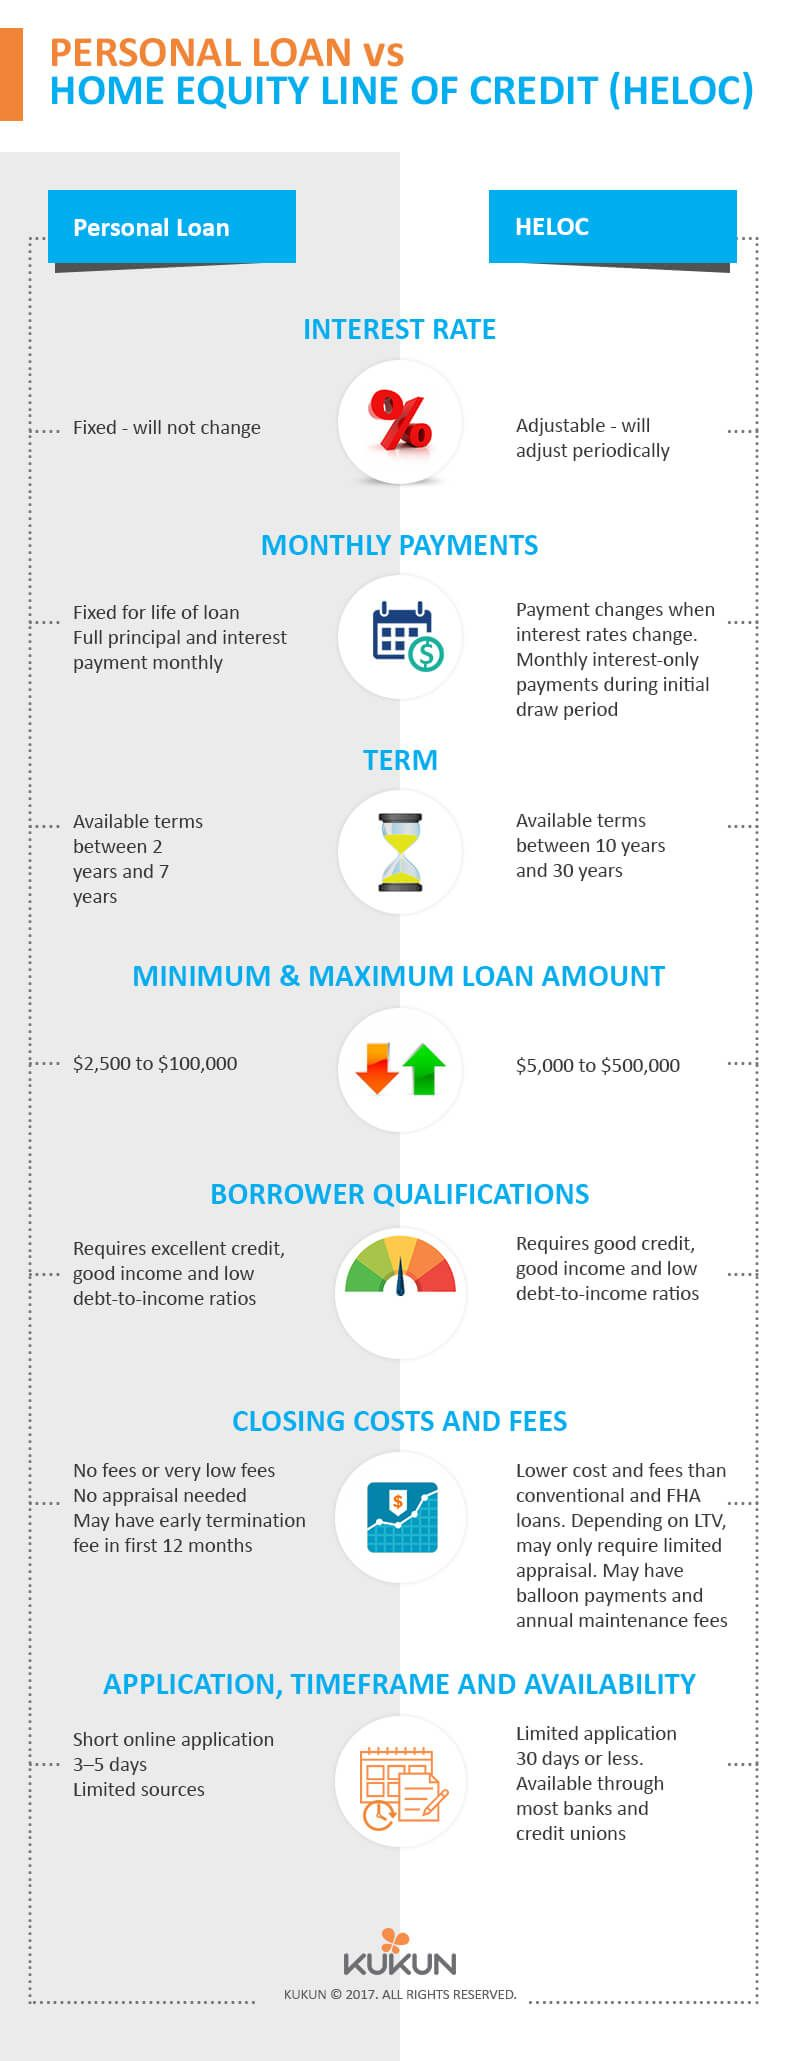 Home Equity Line Of Credit Vs Personal Loan Home Equity Home Equity Line Home Improvement Loans